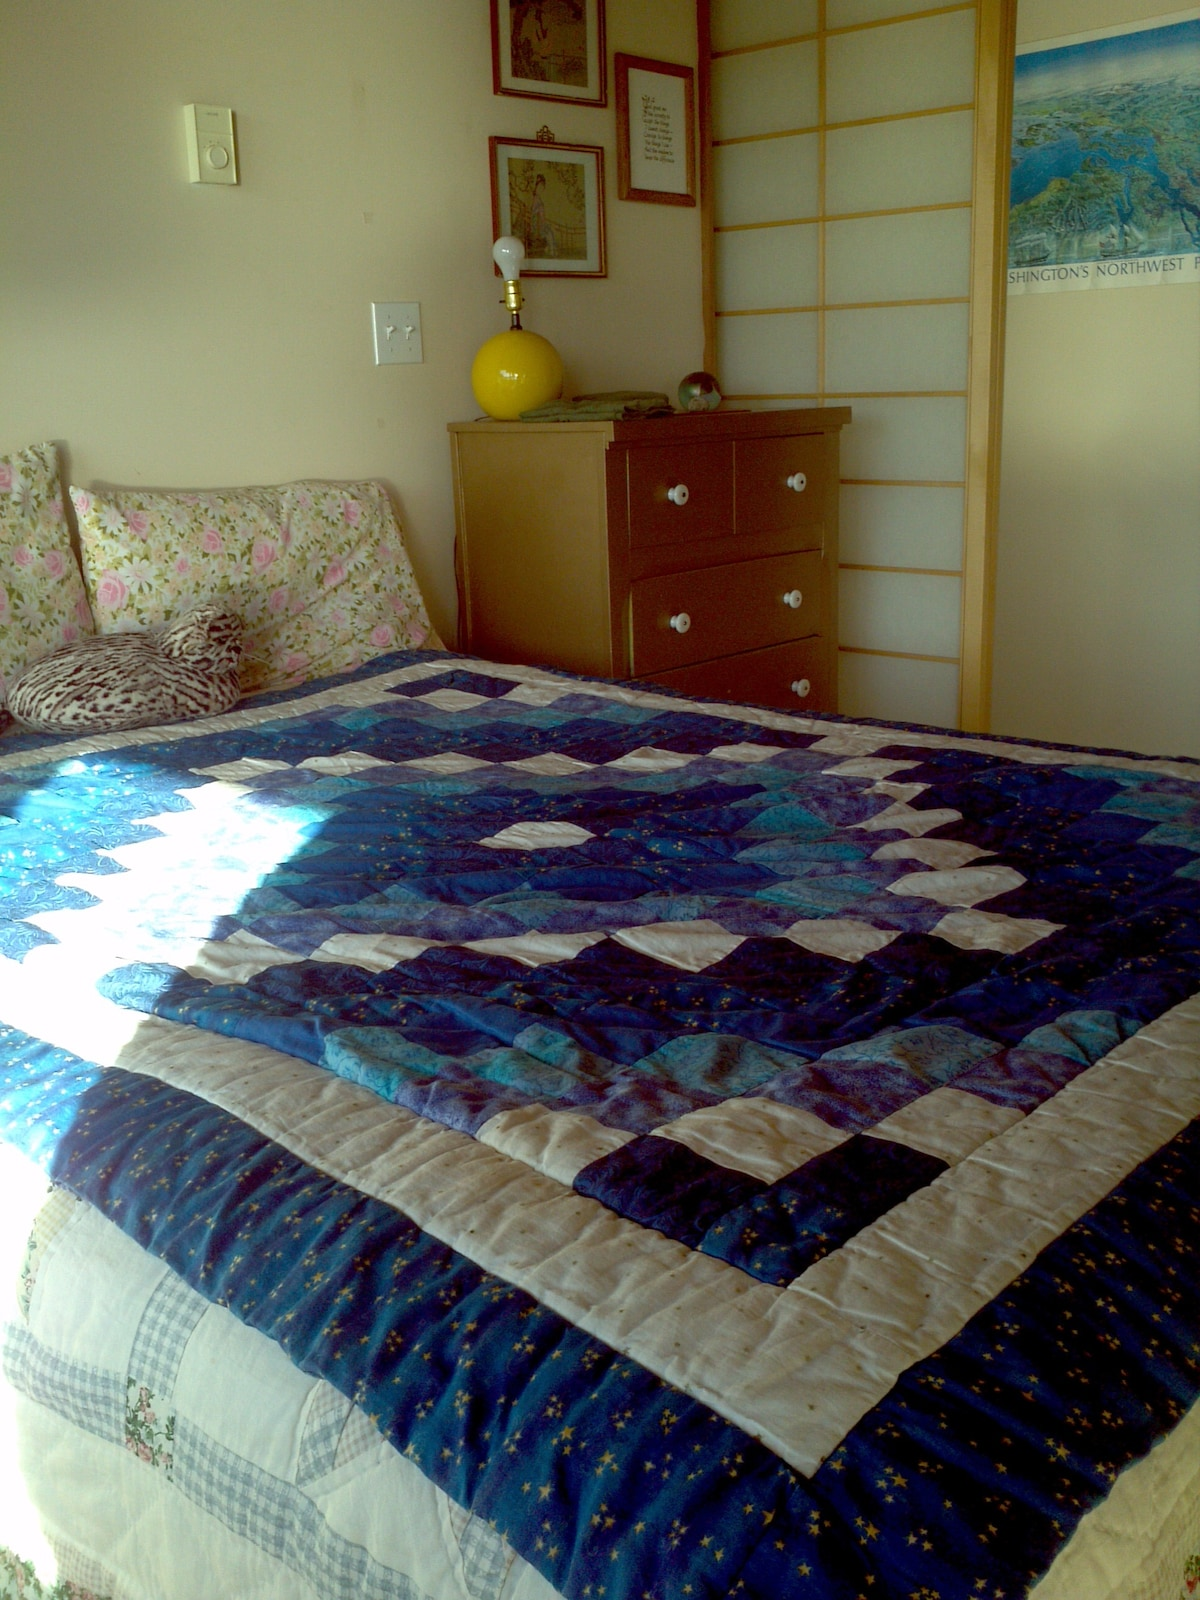 The shoji room with queen bed. Notice the shoji screen to the upper right.